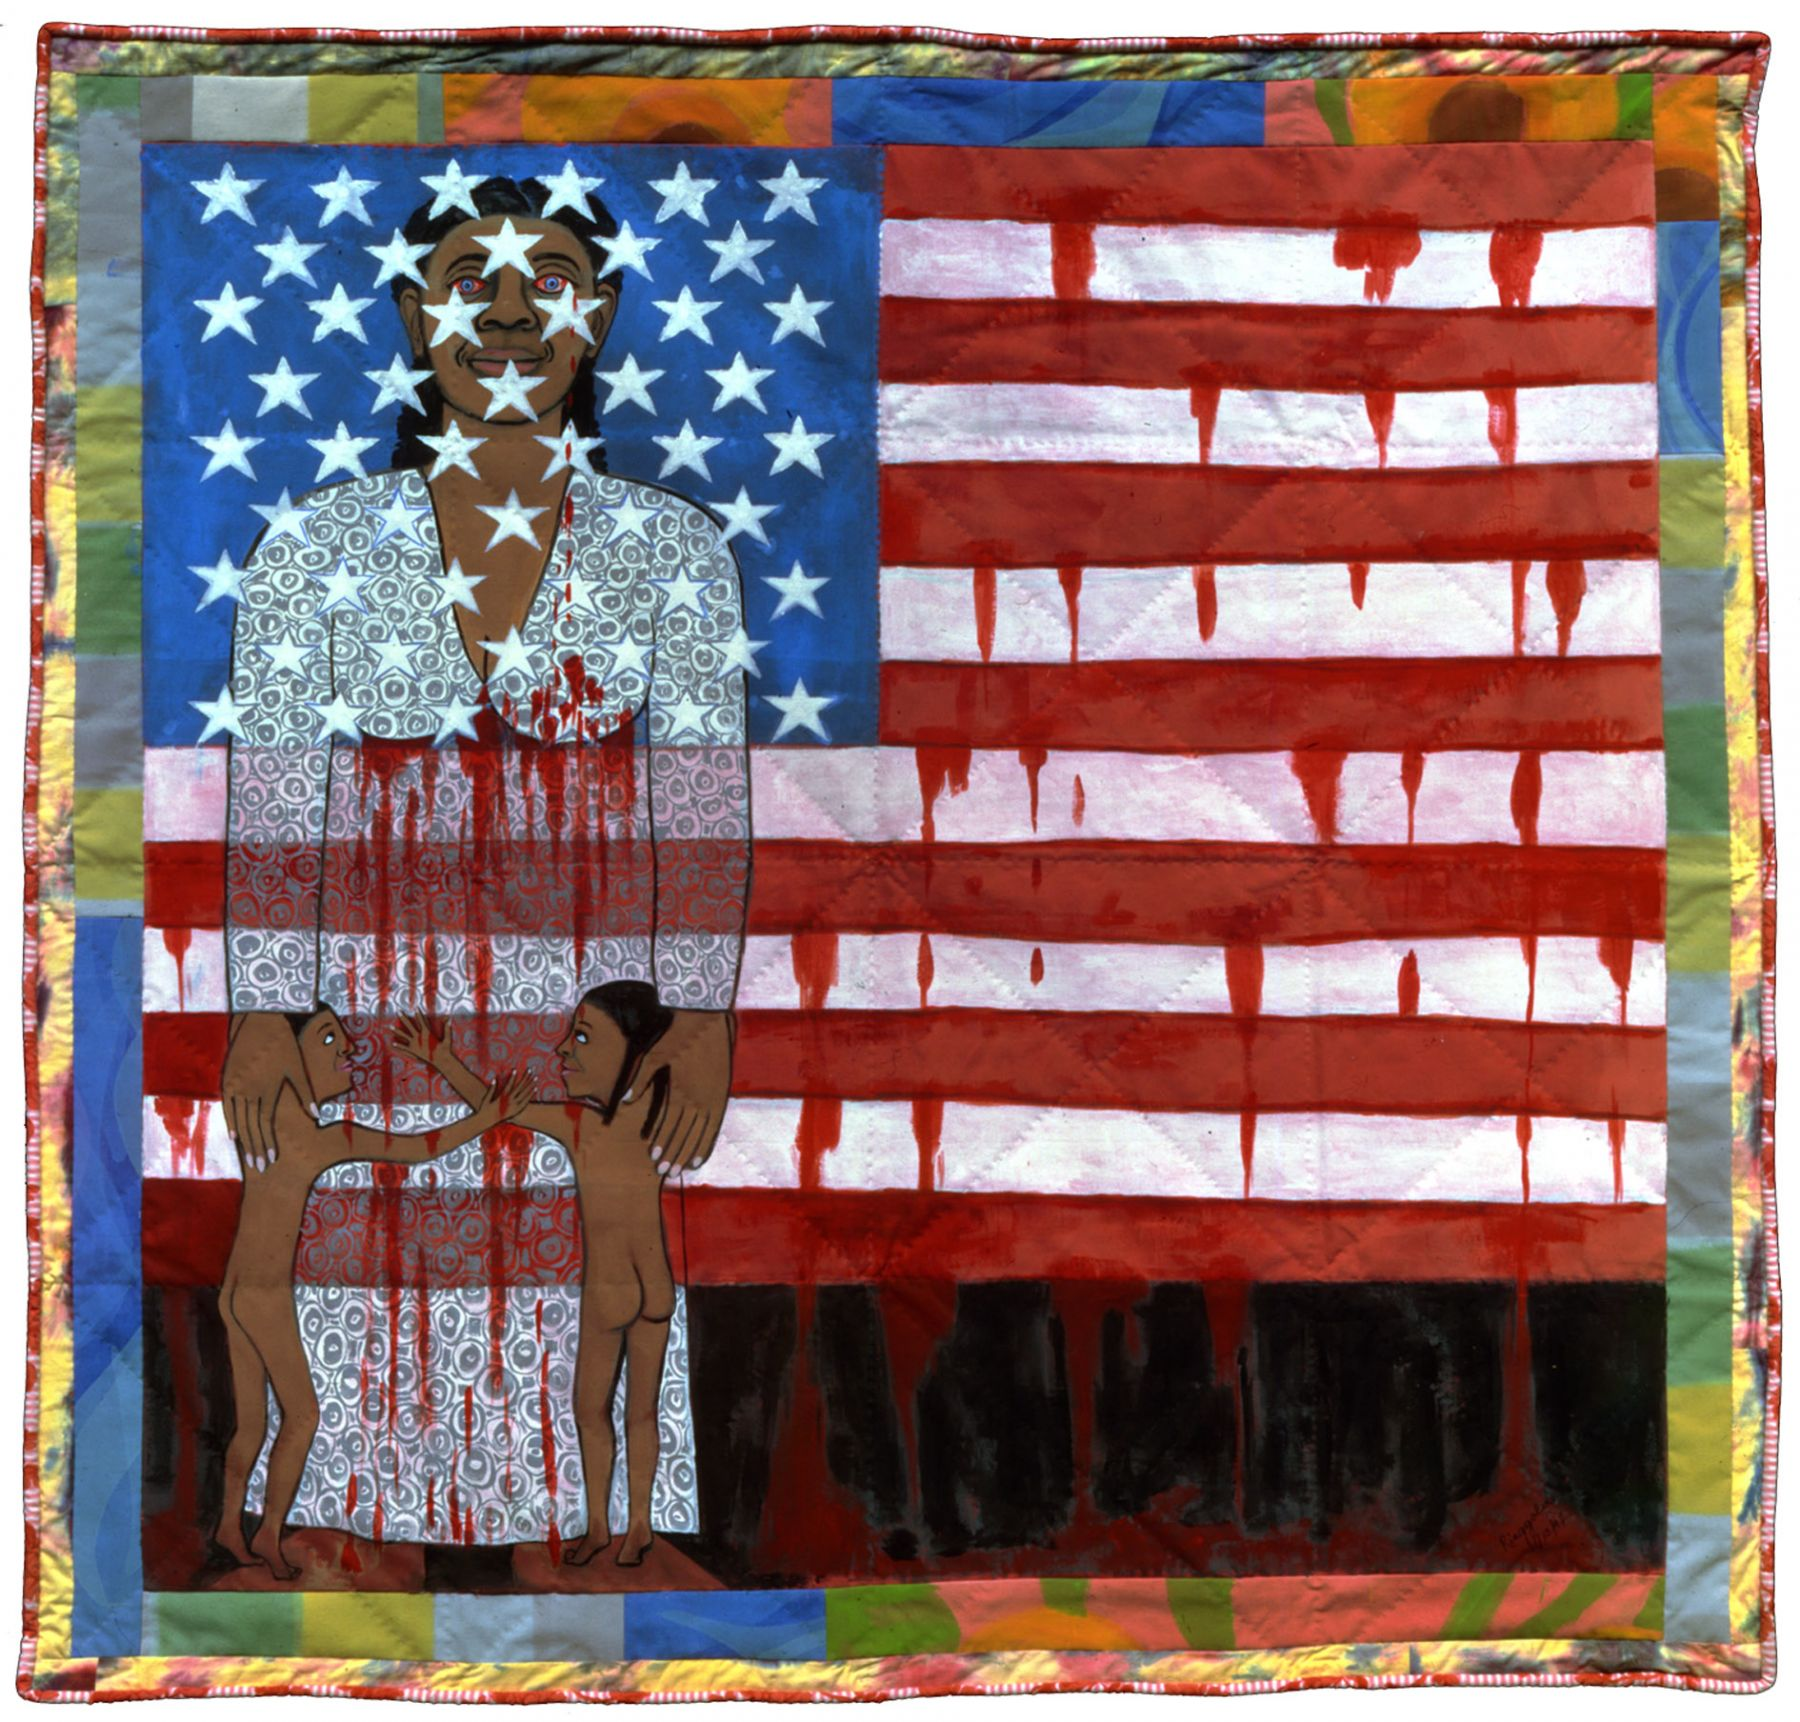 Faith Ringgold, The Flag is Bleeding #2 (The American Collection #6), (SOLD), 1997, acrylic on canvas with painted and pieced border, 79 x 76 inches